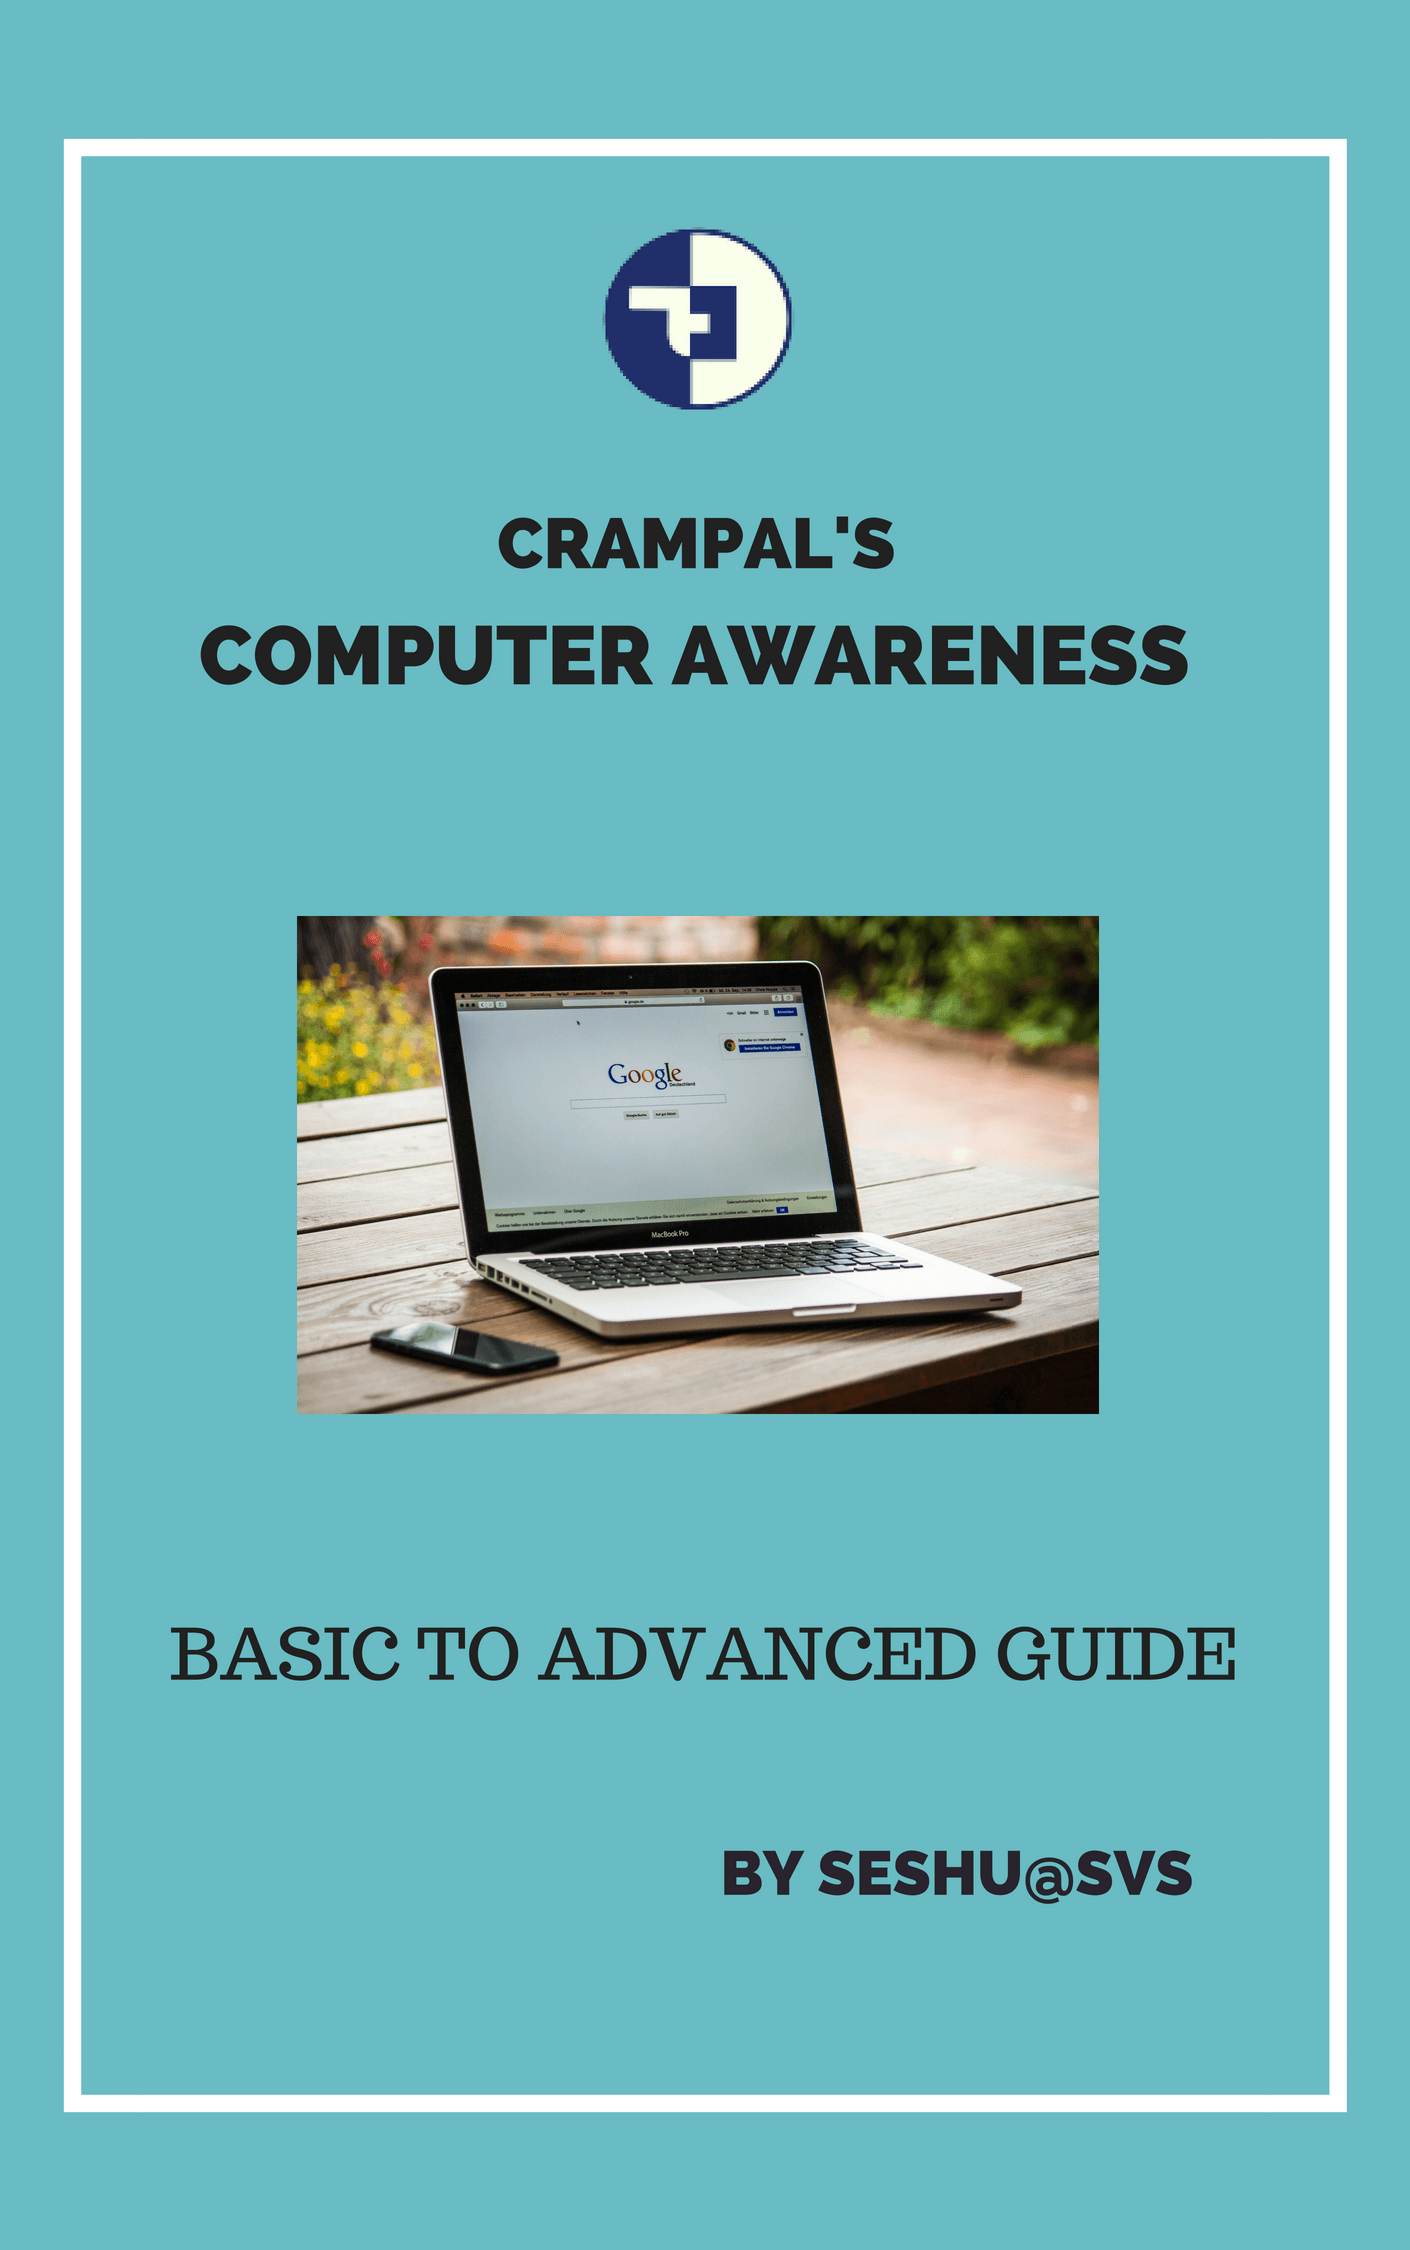 COMPUTER-AWARENESS-GUIDE